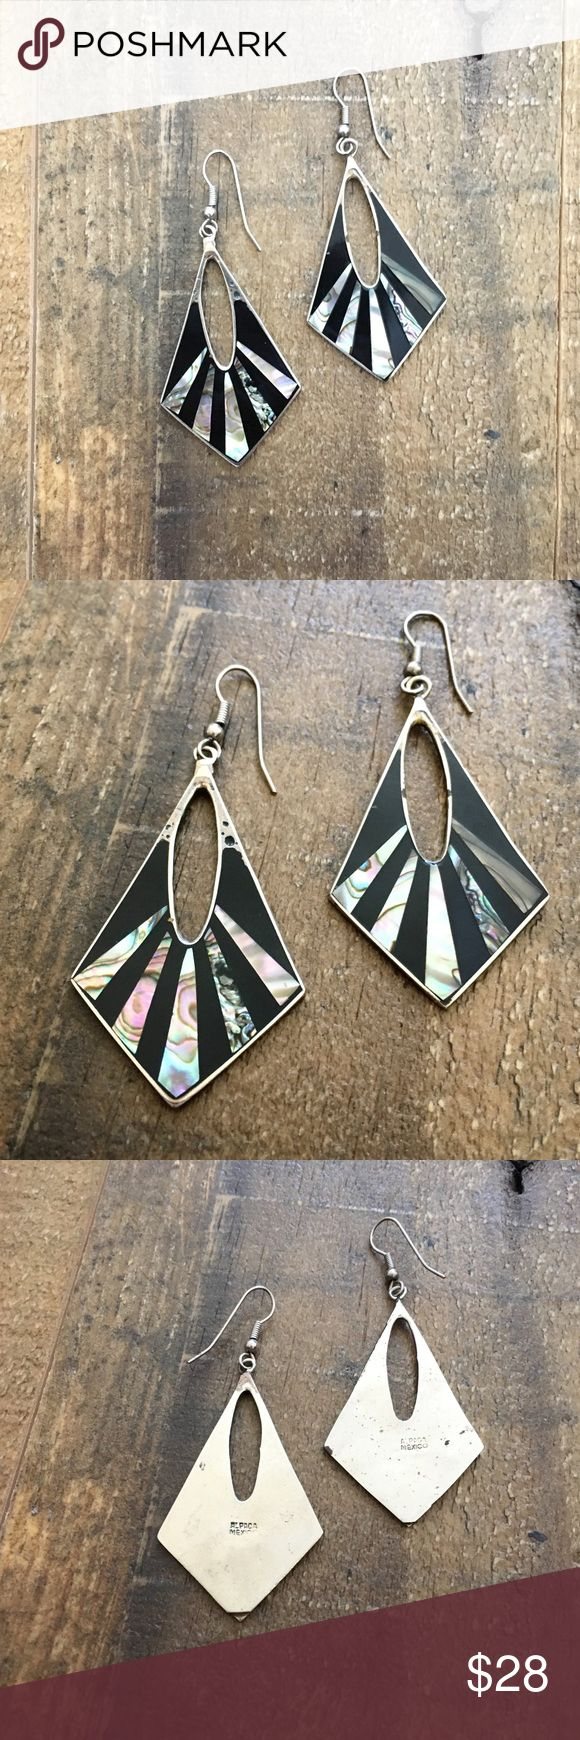 '80s / Mexico Silver Zebra Earrings Alpaca Mexico silver dangle earrings with abalone inlay. *Matching bangles also for sale!  ⁂ Great bundle item! Two items = 20% off ☒ I do not model or trade, sorry! ❁ Check out my closet for more vintage! Vintage Jewelry Earrings